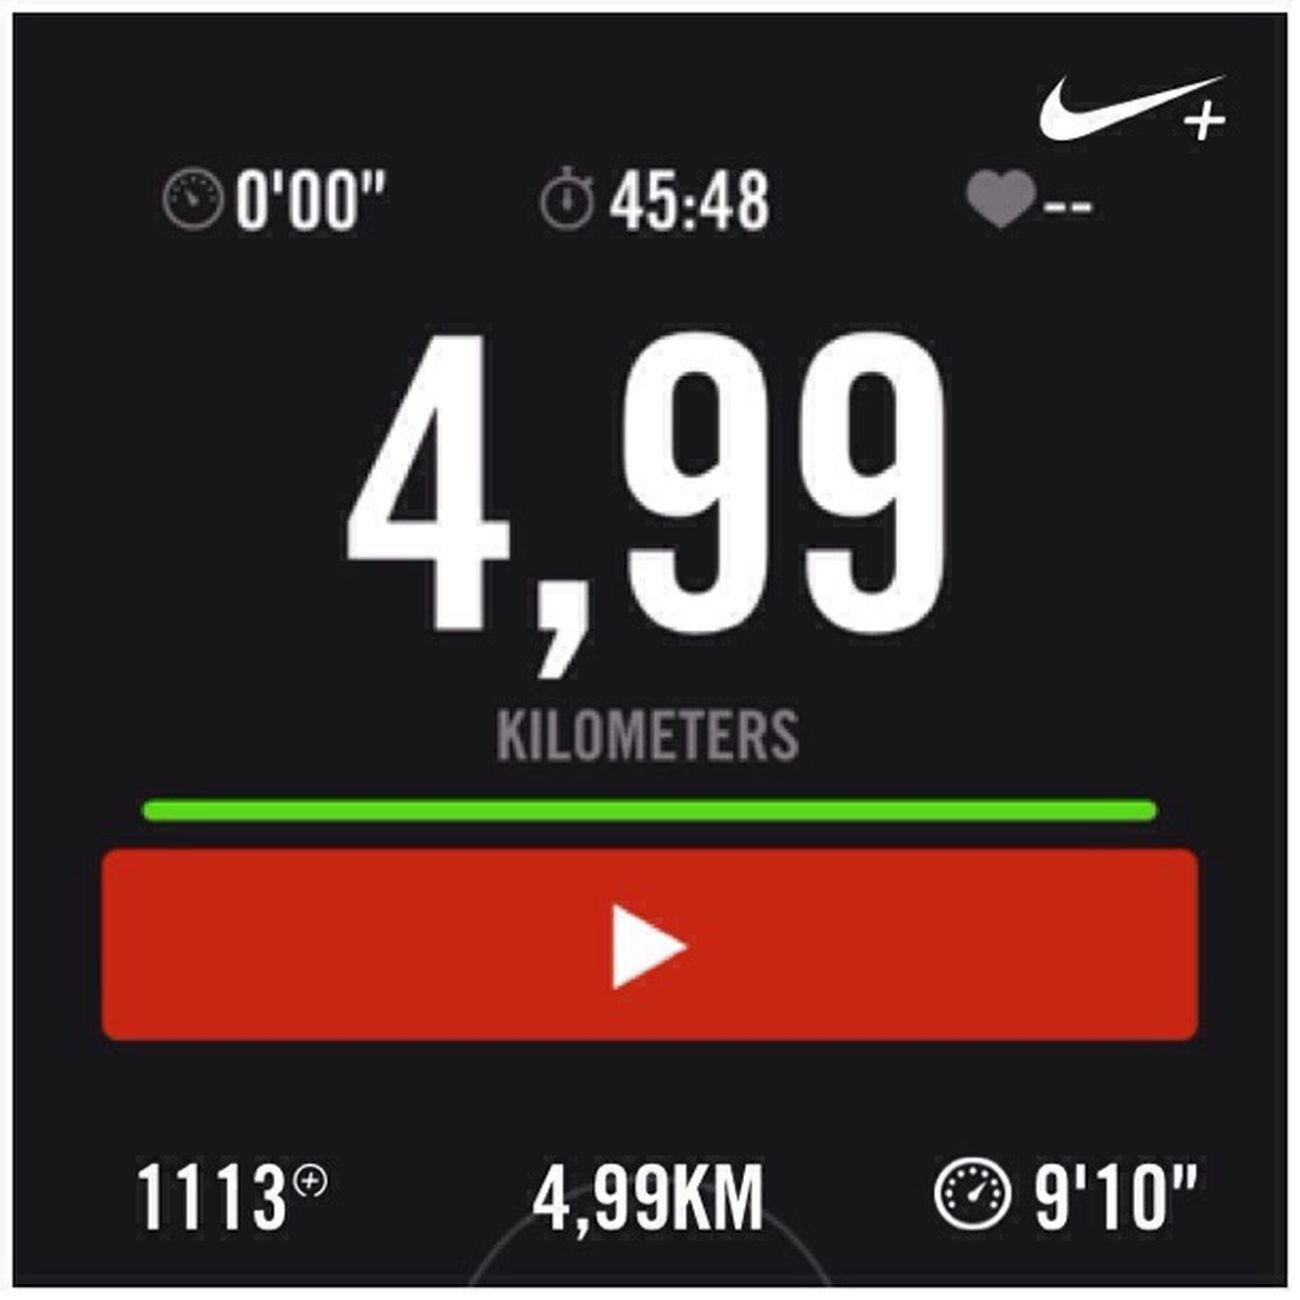 In this morning, I run 4,99 km with Nikerunning